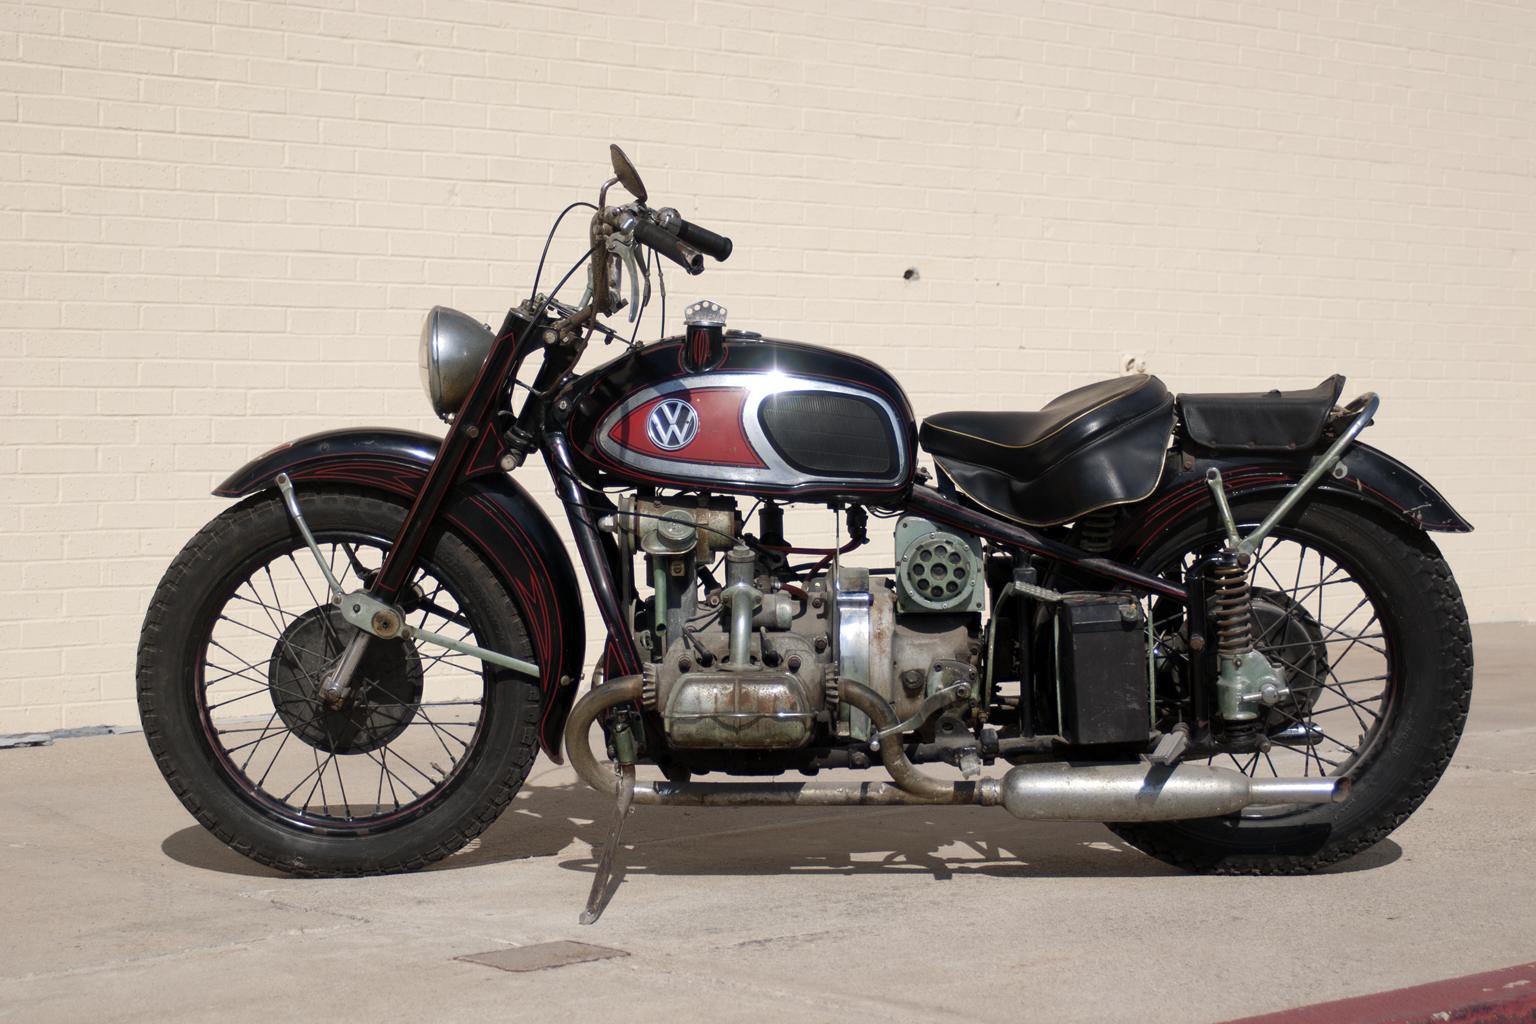 V Twin News Xavw Motorcycle Created By Von Dutch New At